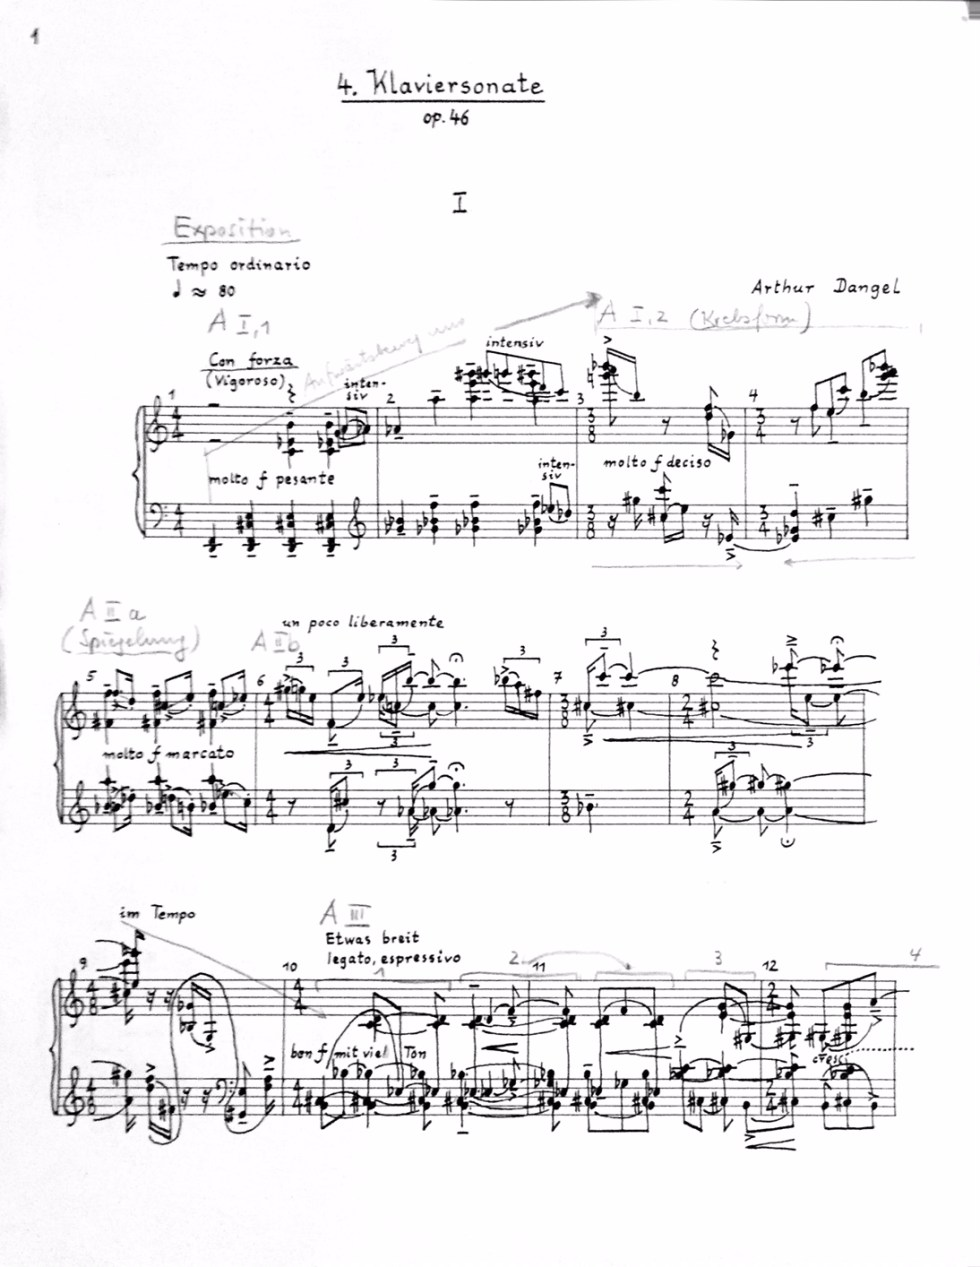 ARTHUR DANGEL: Klaviersonate 4 / recording to follow